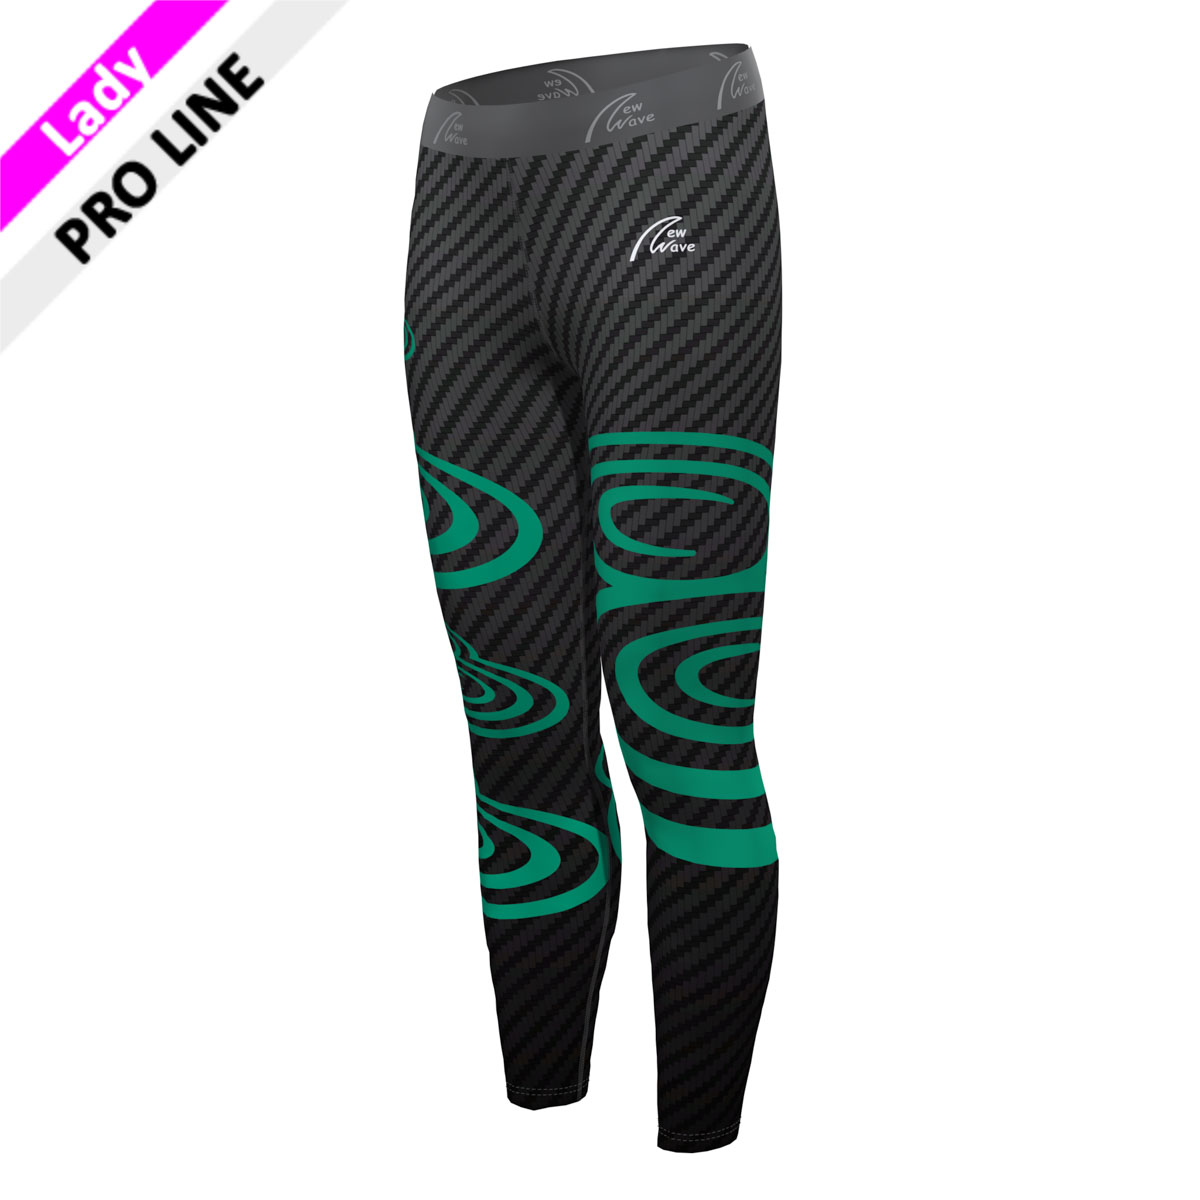 Flex Tights F - Design D8